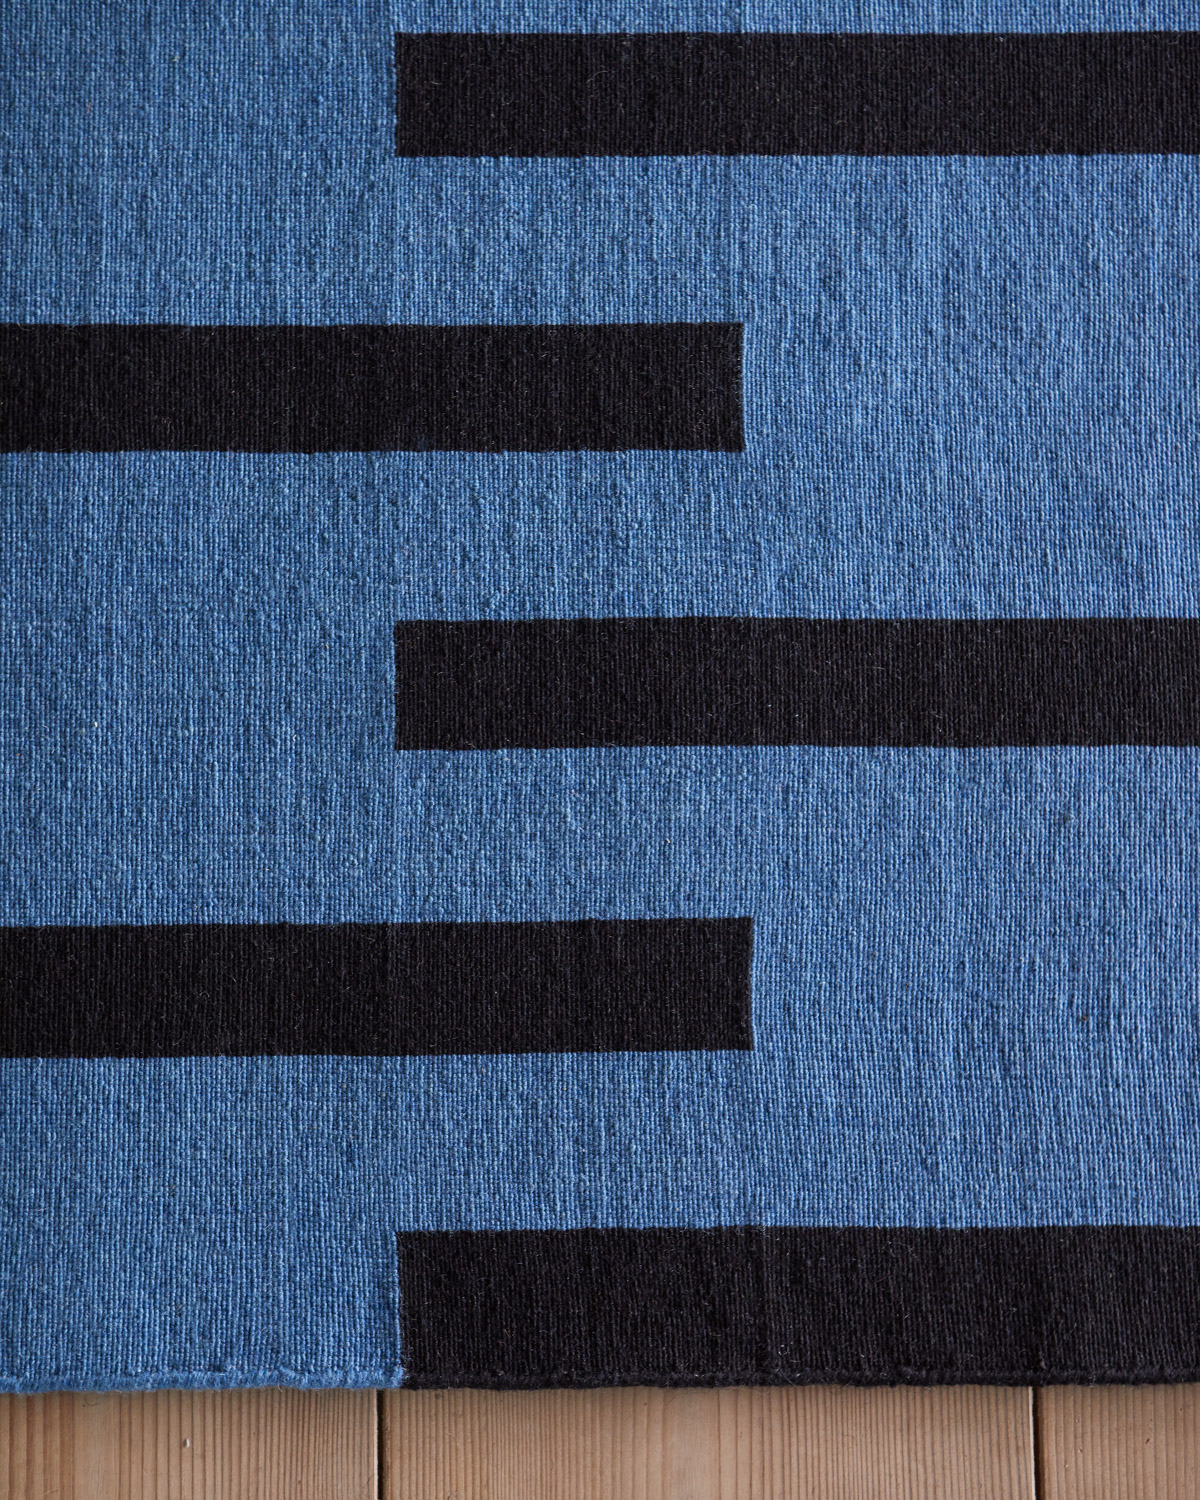 Close up of Tiger rug in color combination Blue and Black.